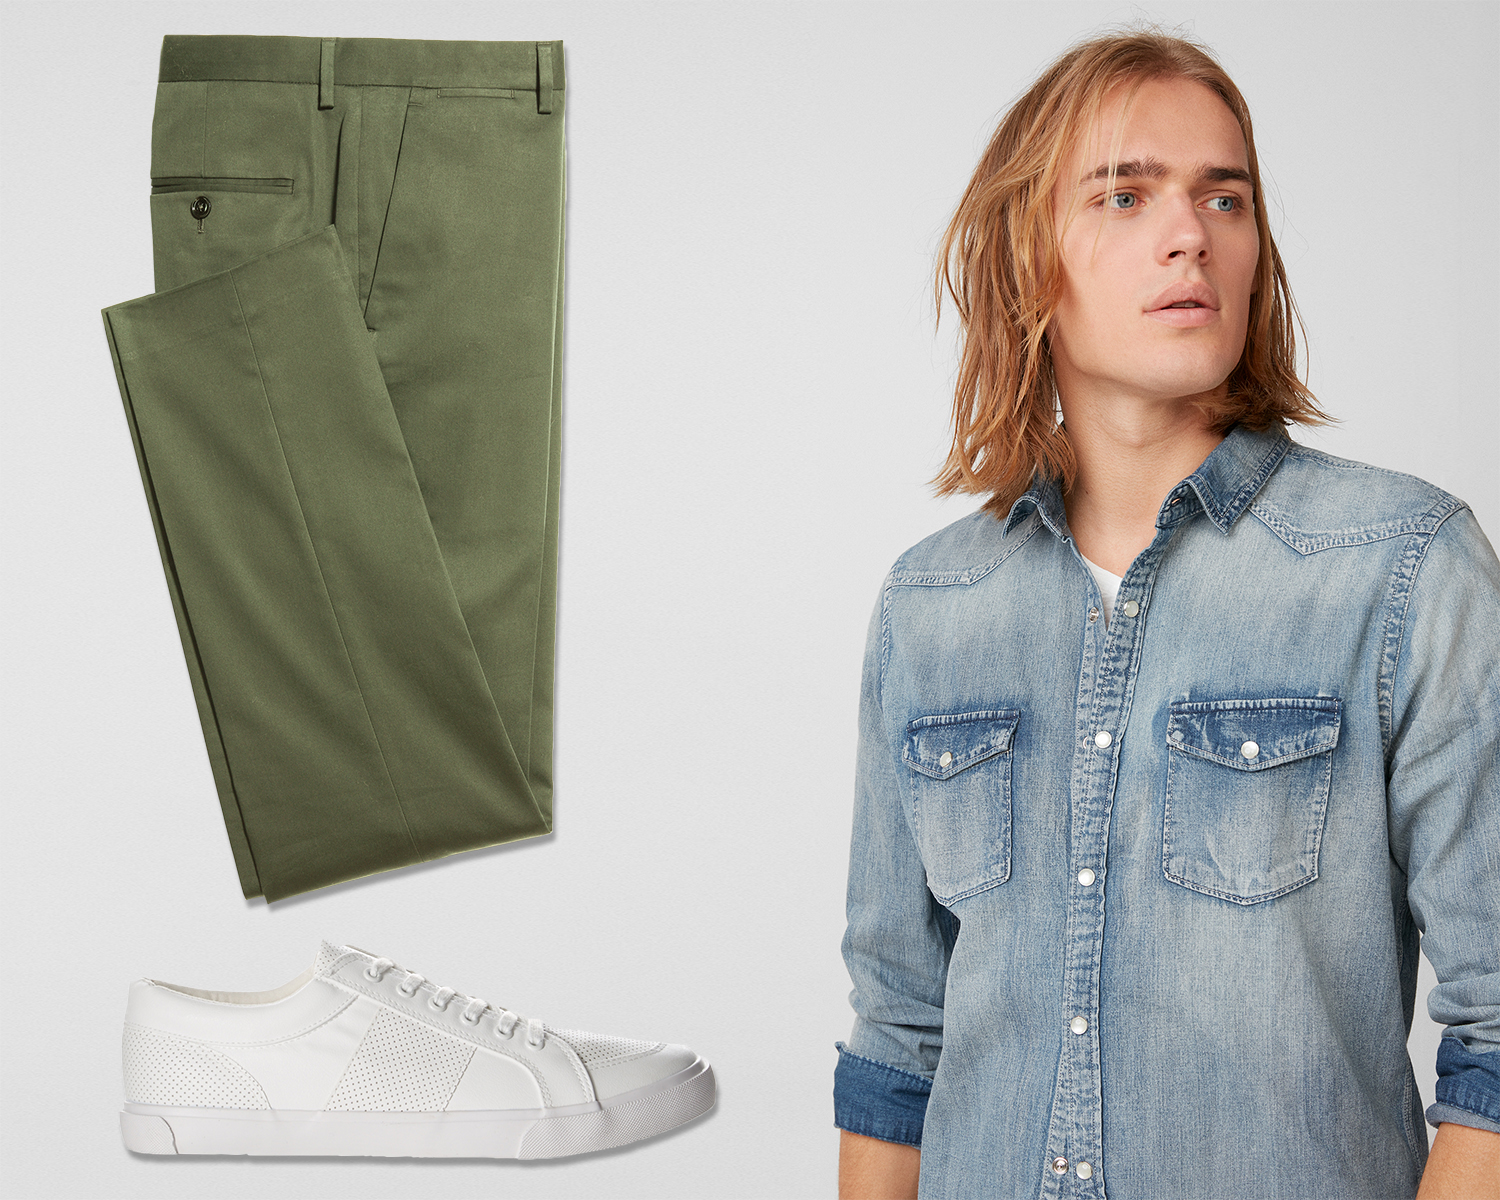 mens-washed-western-denim-shirt-stretch-olive-chinos-perforated-low-top-sneakers